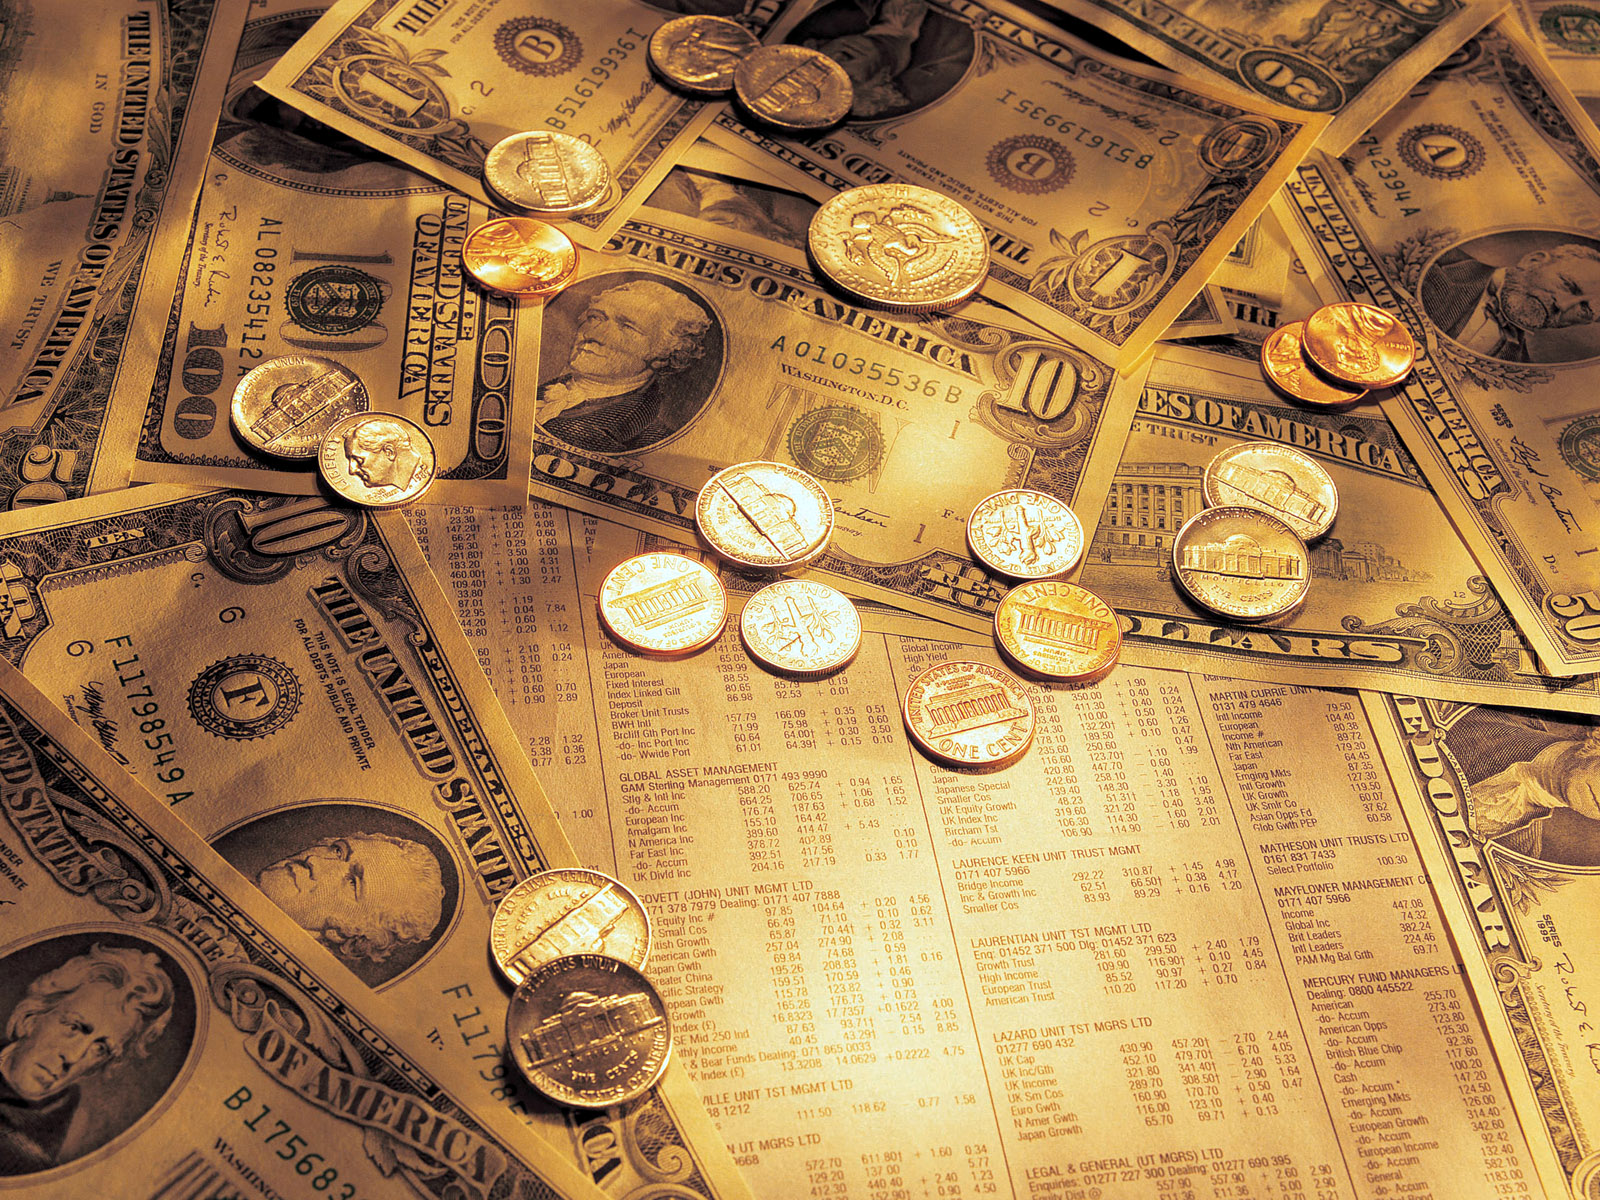 hd cool wallpapers of money